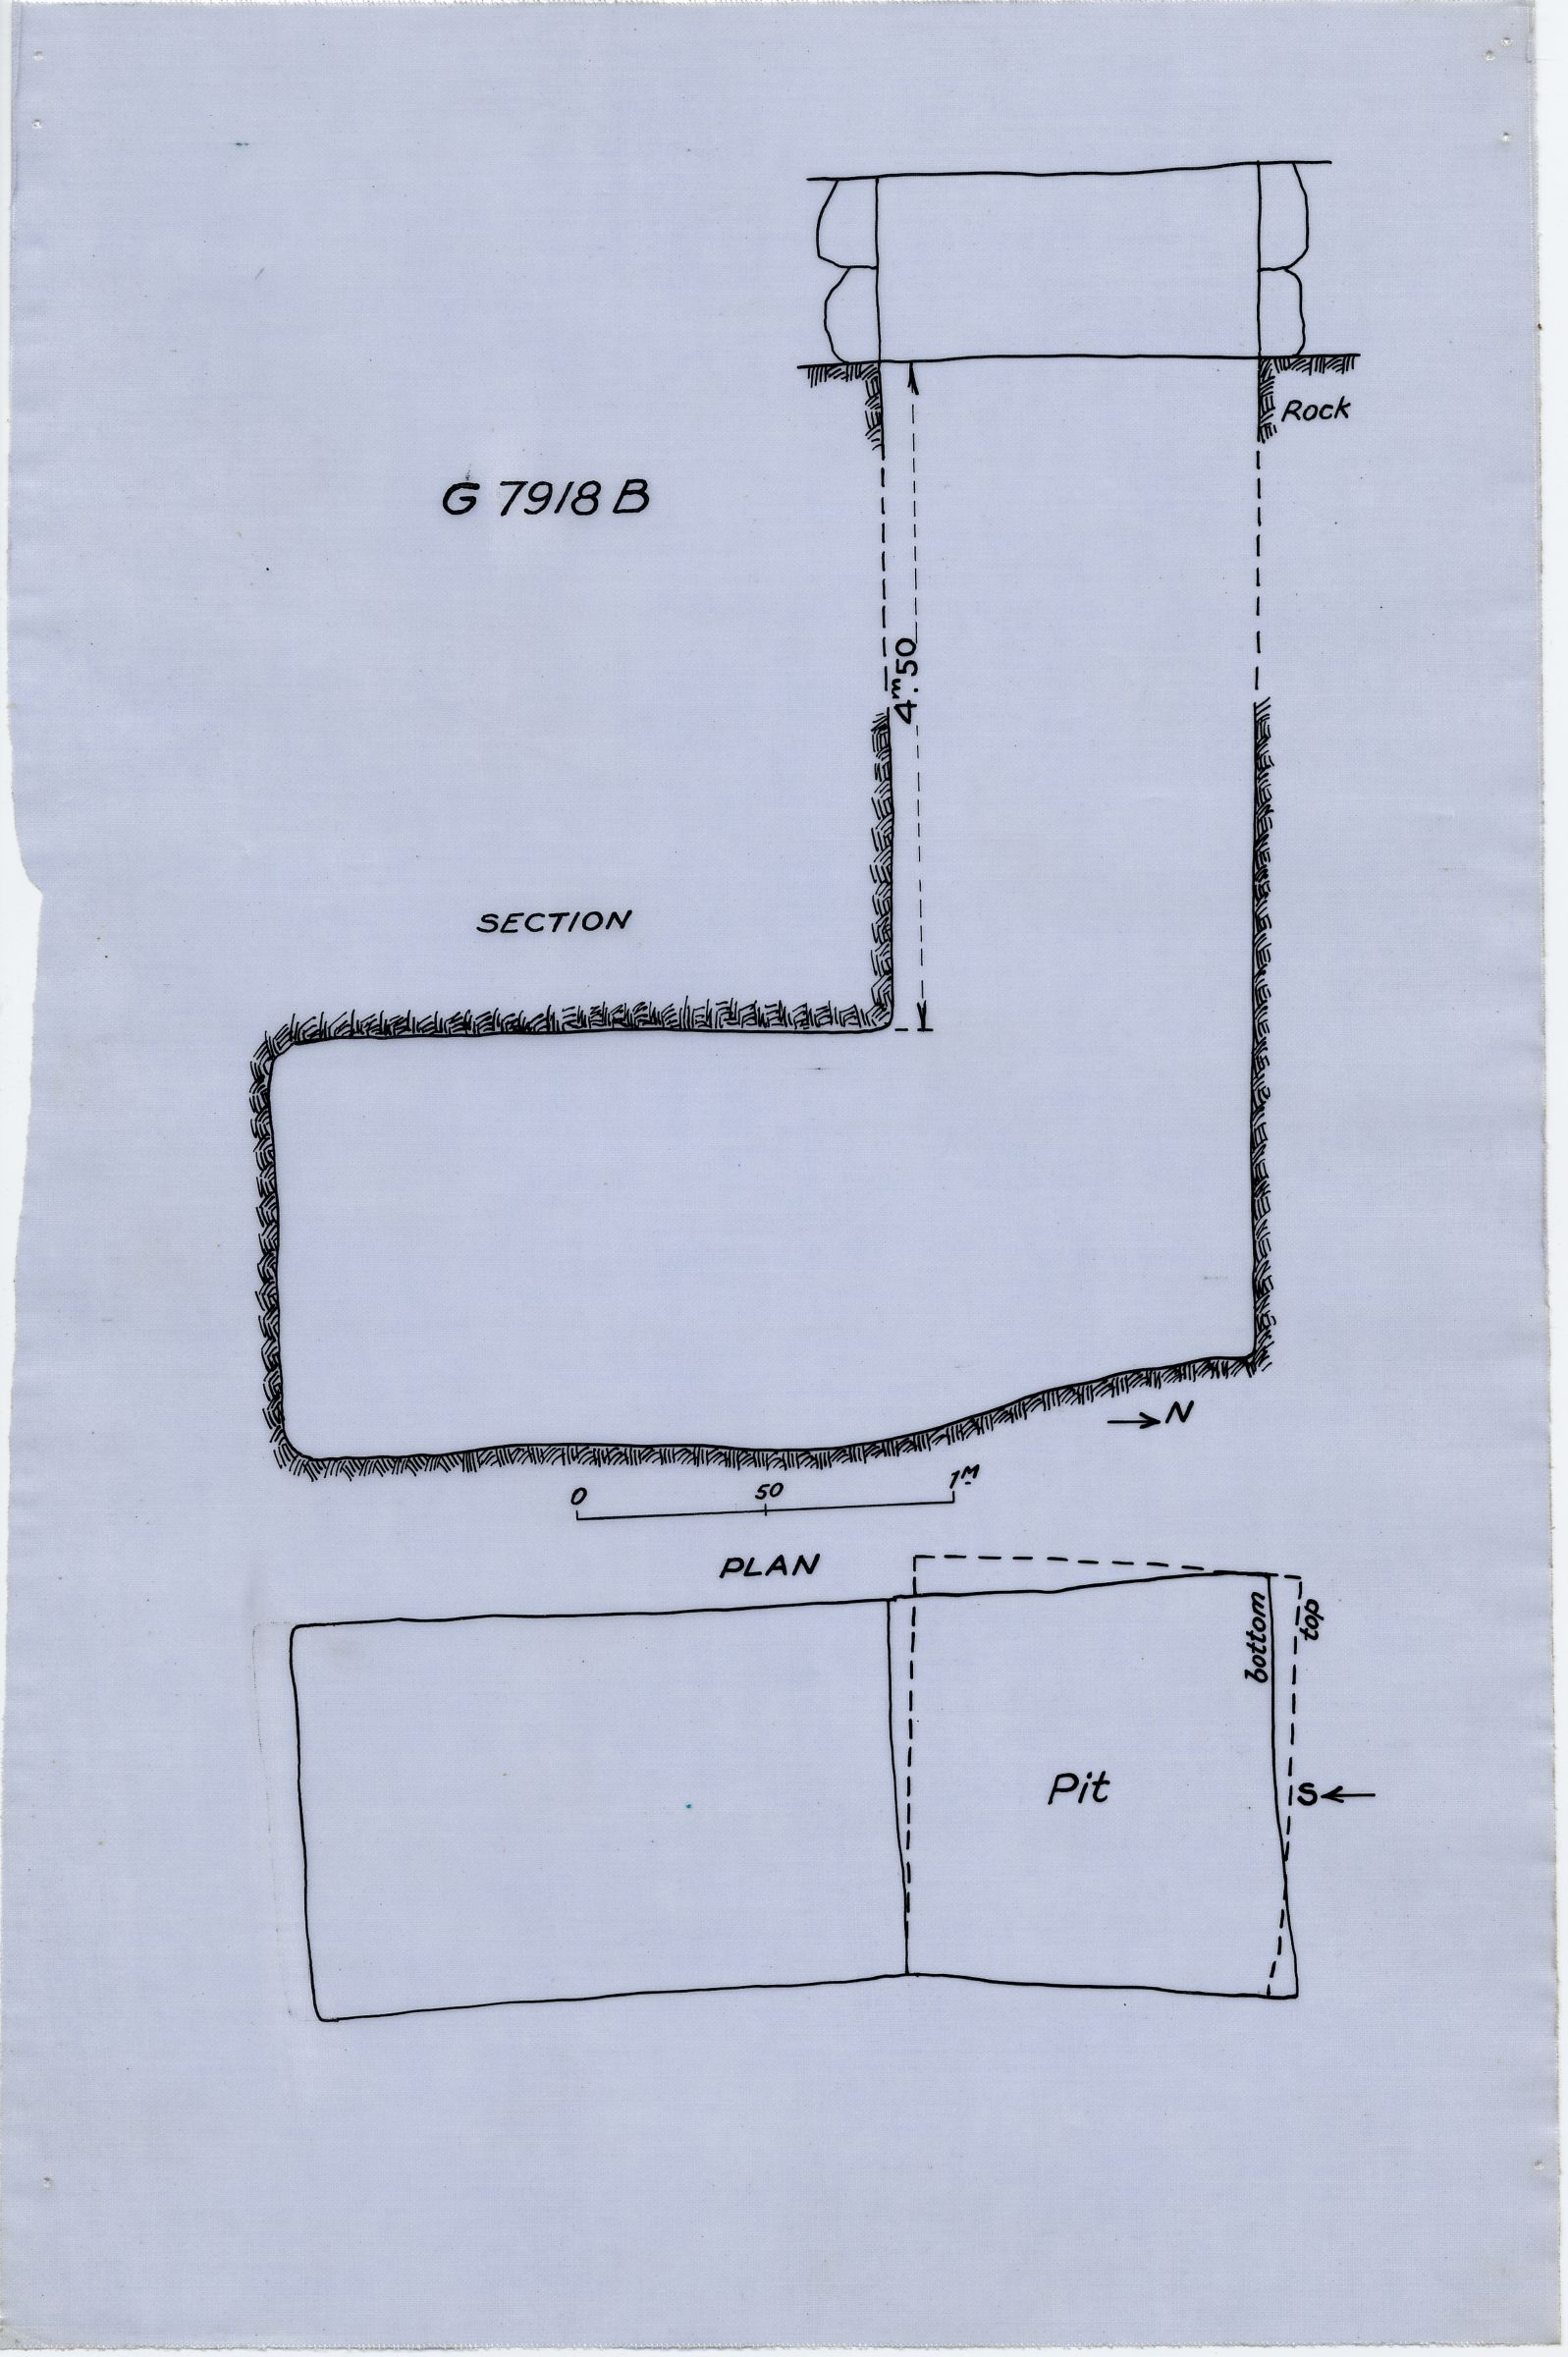 Maps and plans: G 7918, Shaft B